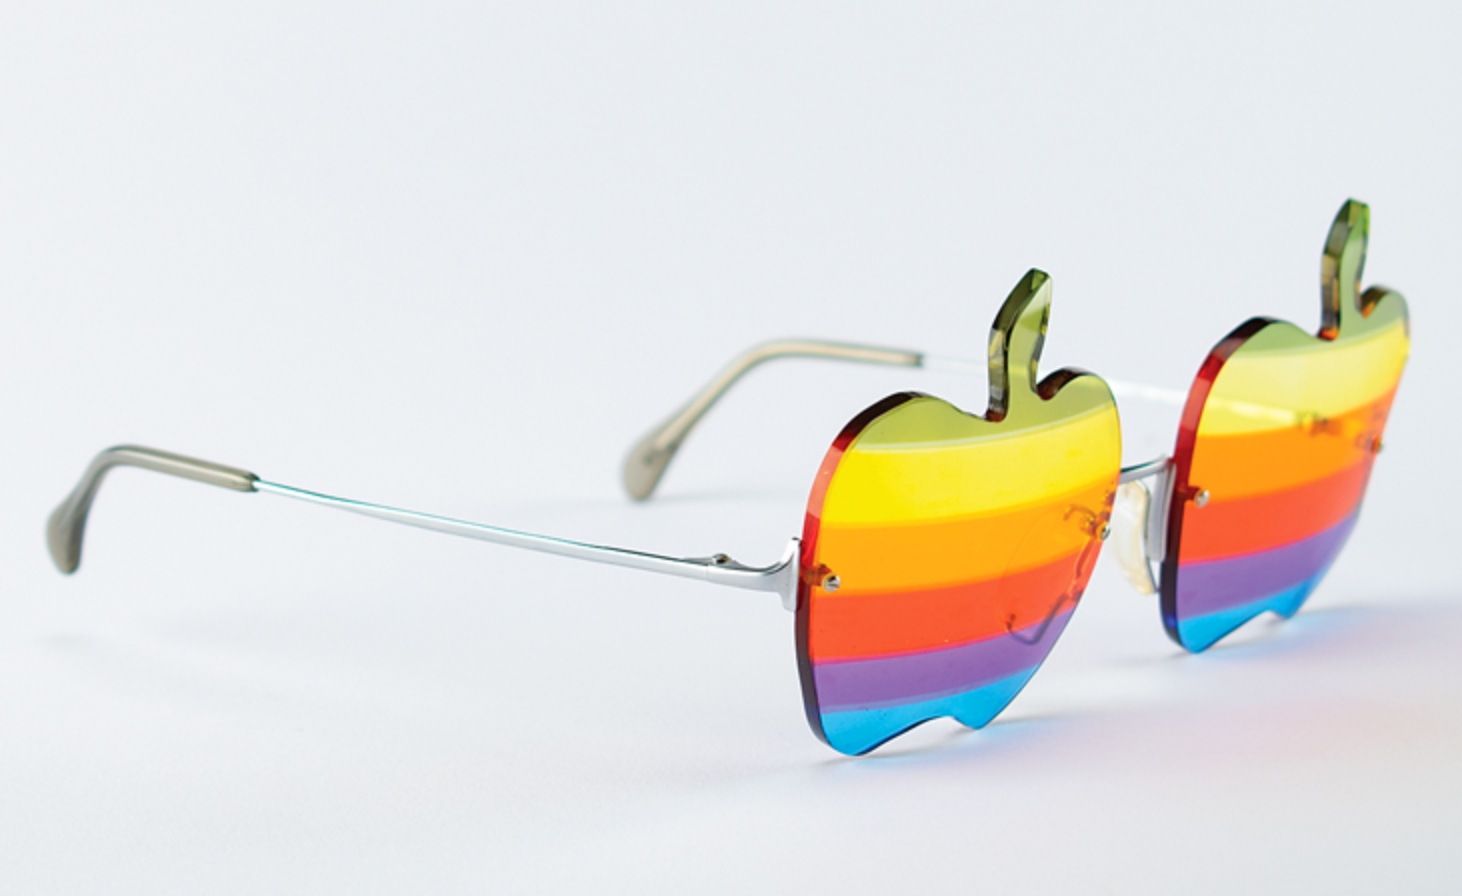 Woz's Apple rainbow logo eyeglasses (and an Apple I) up for auction